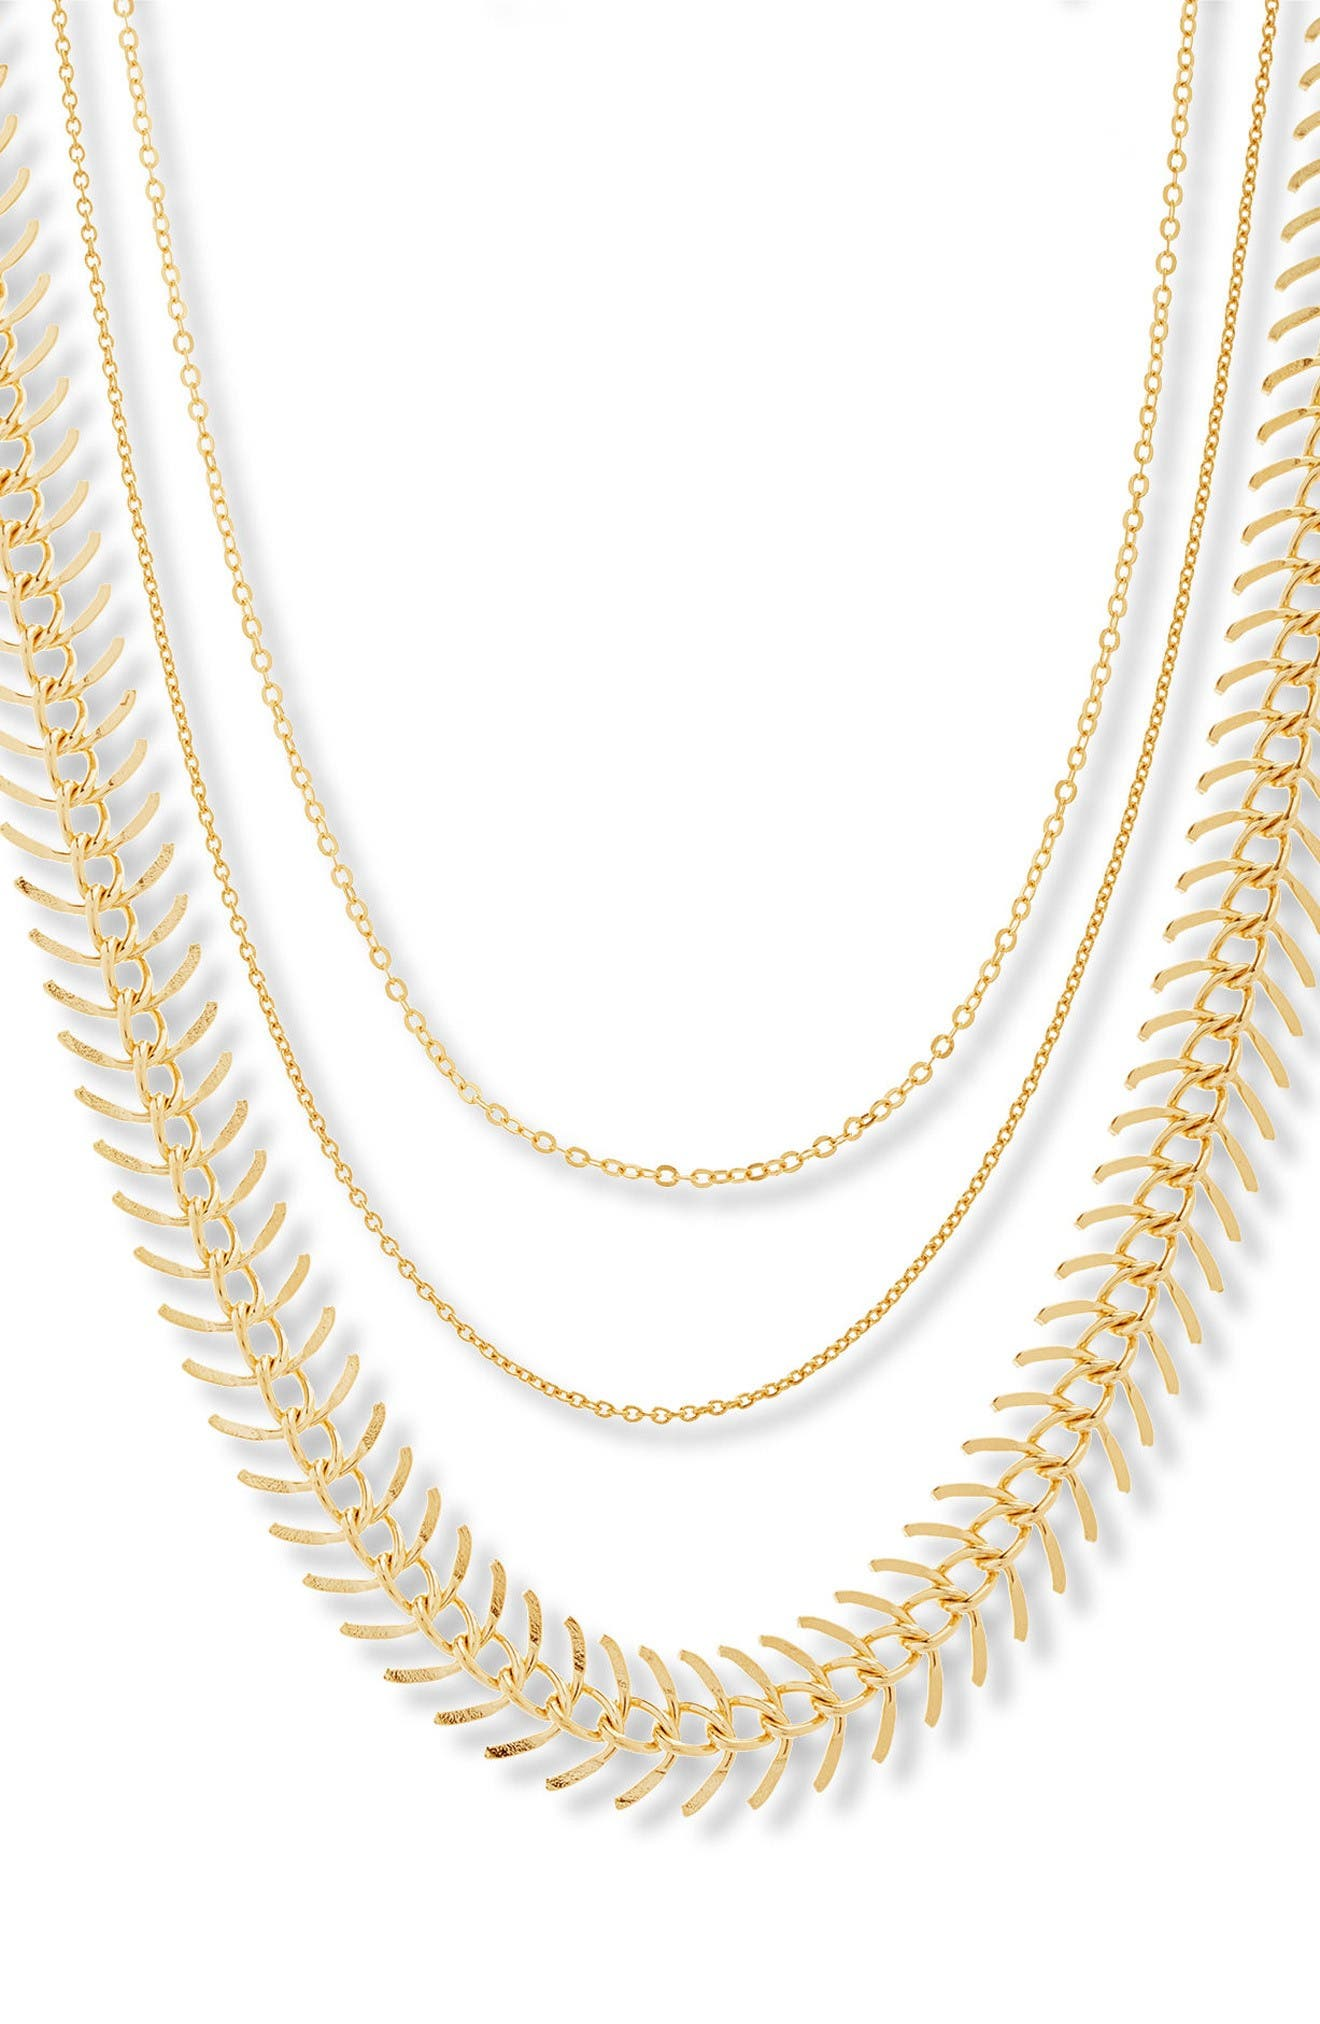 Steve Madden Layered Chain Choker